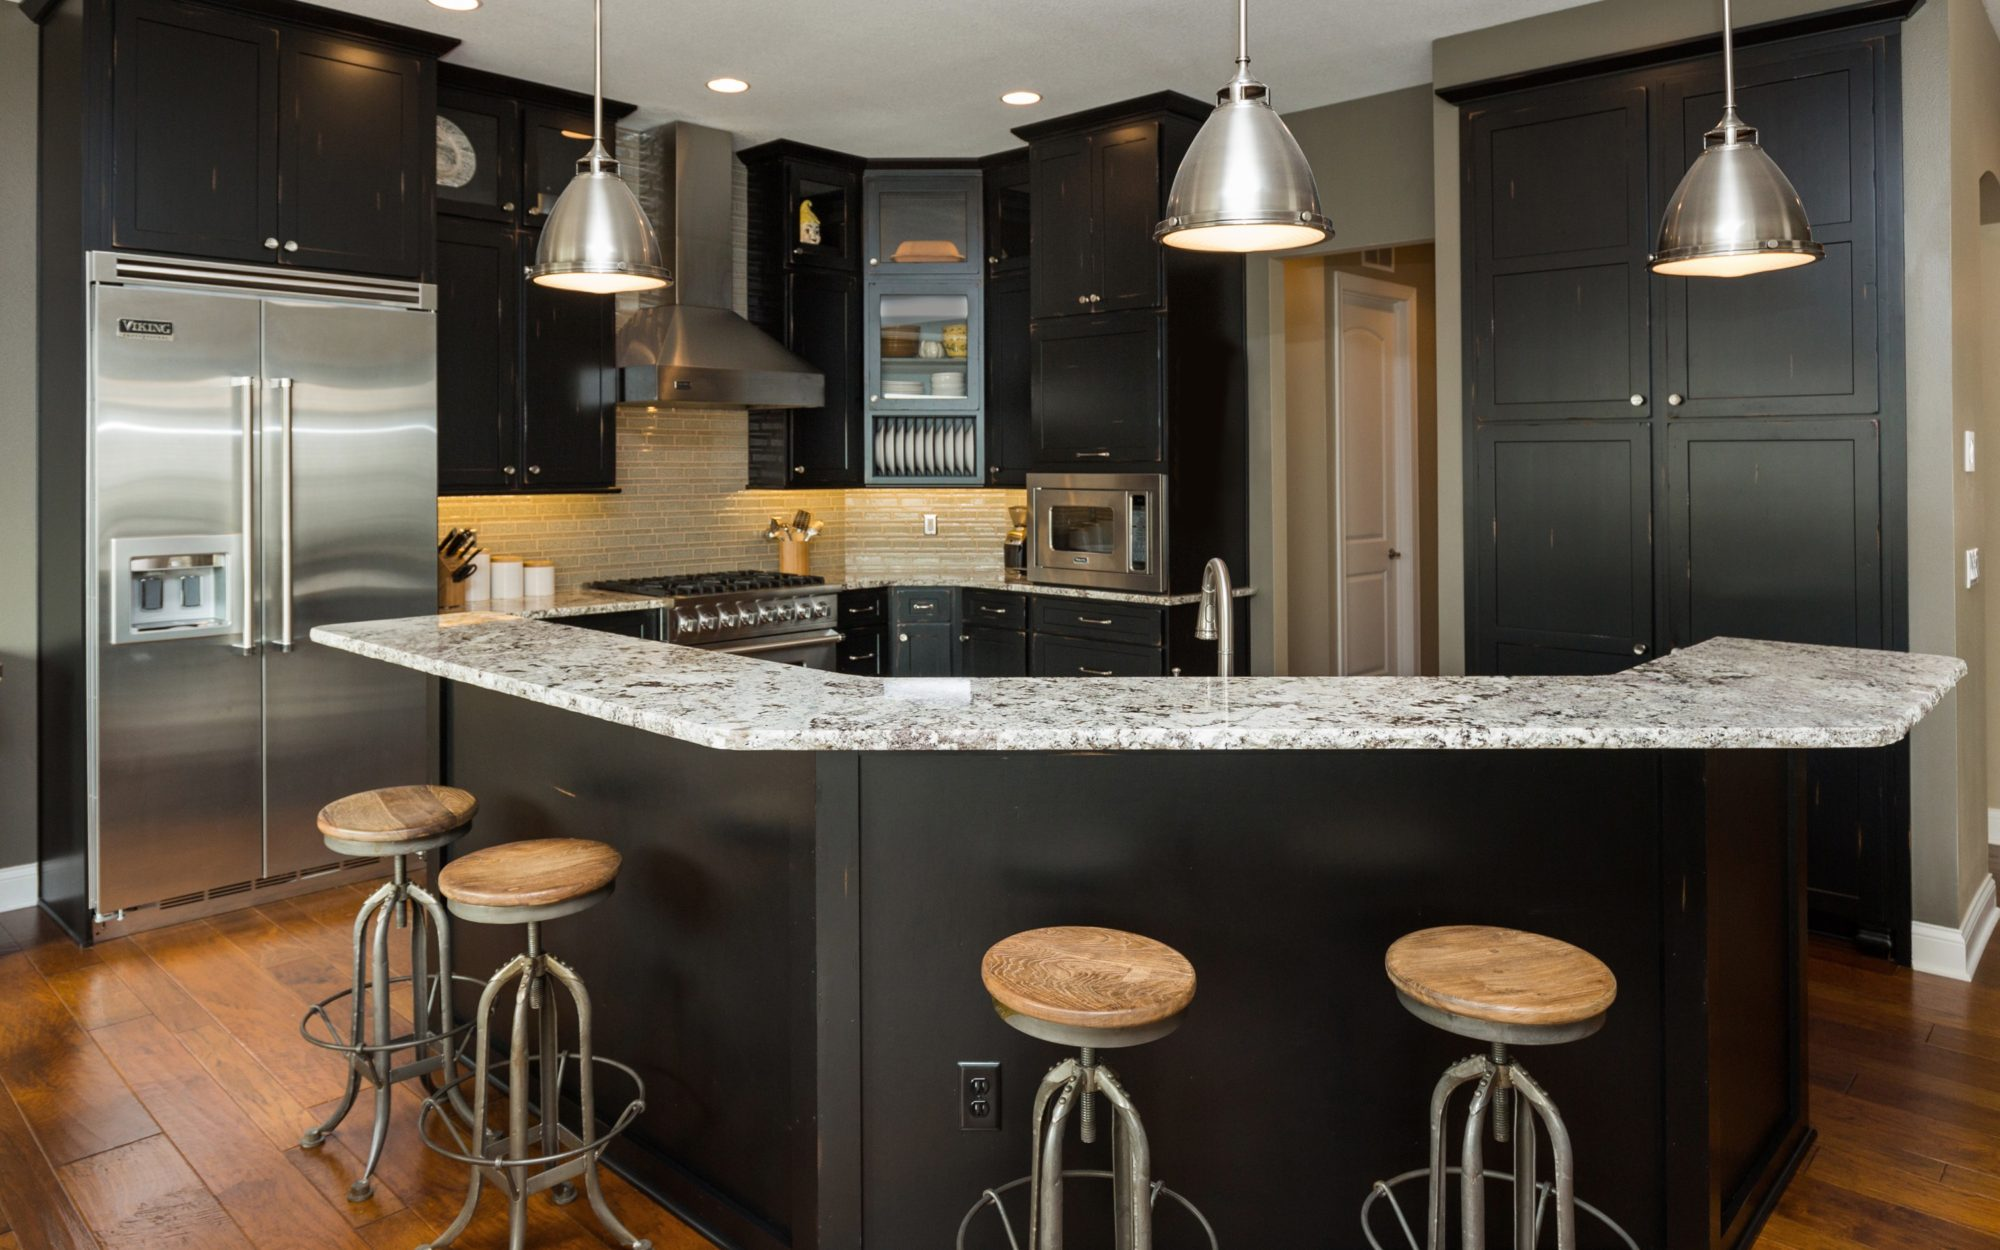 Delicieux Featured Des Moines Kitchen Remodels. View All Kitchens